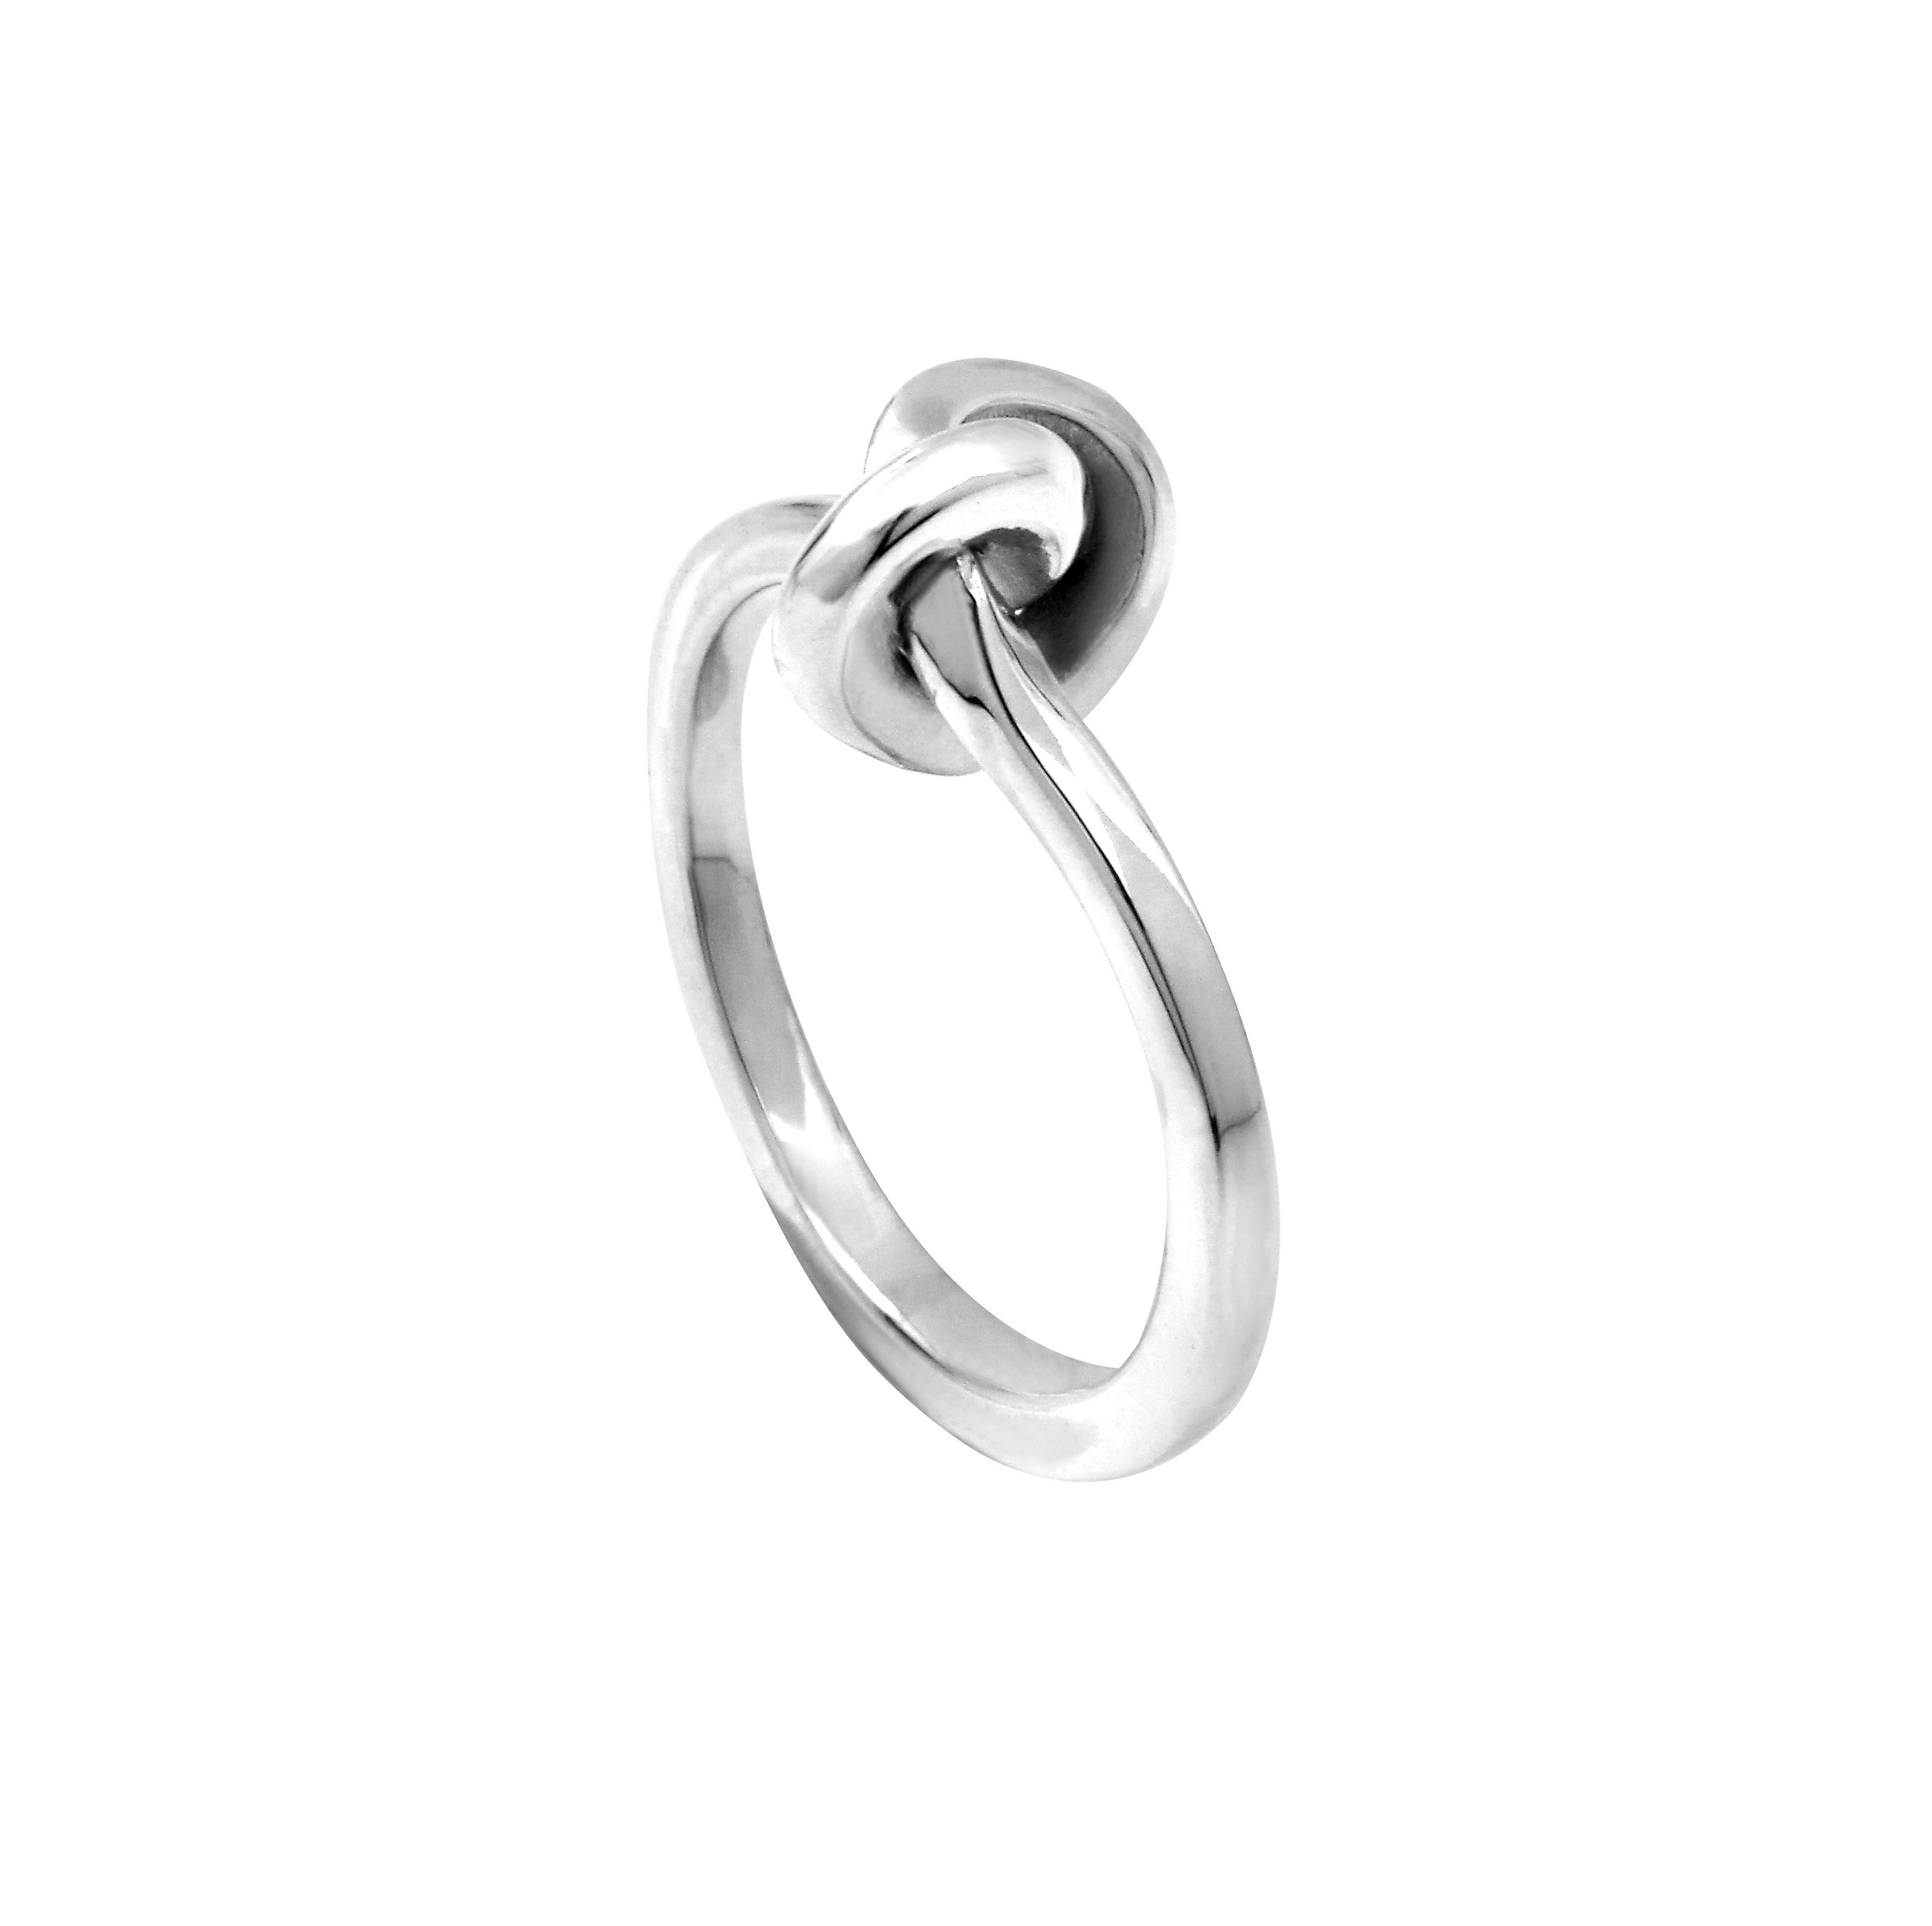 Silver Knot Ring – AuroreHavenne